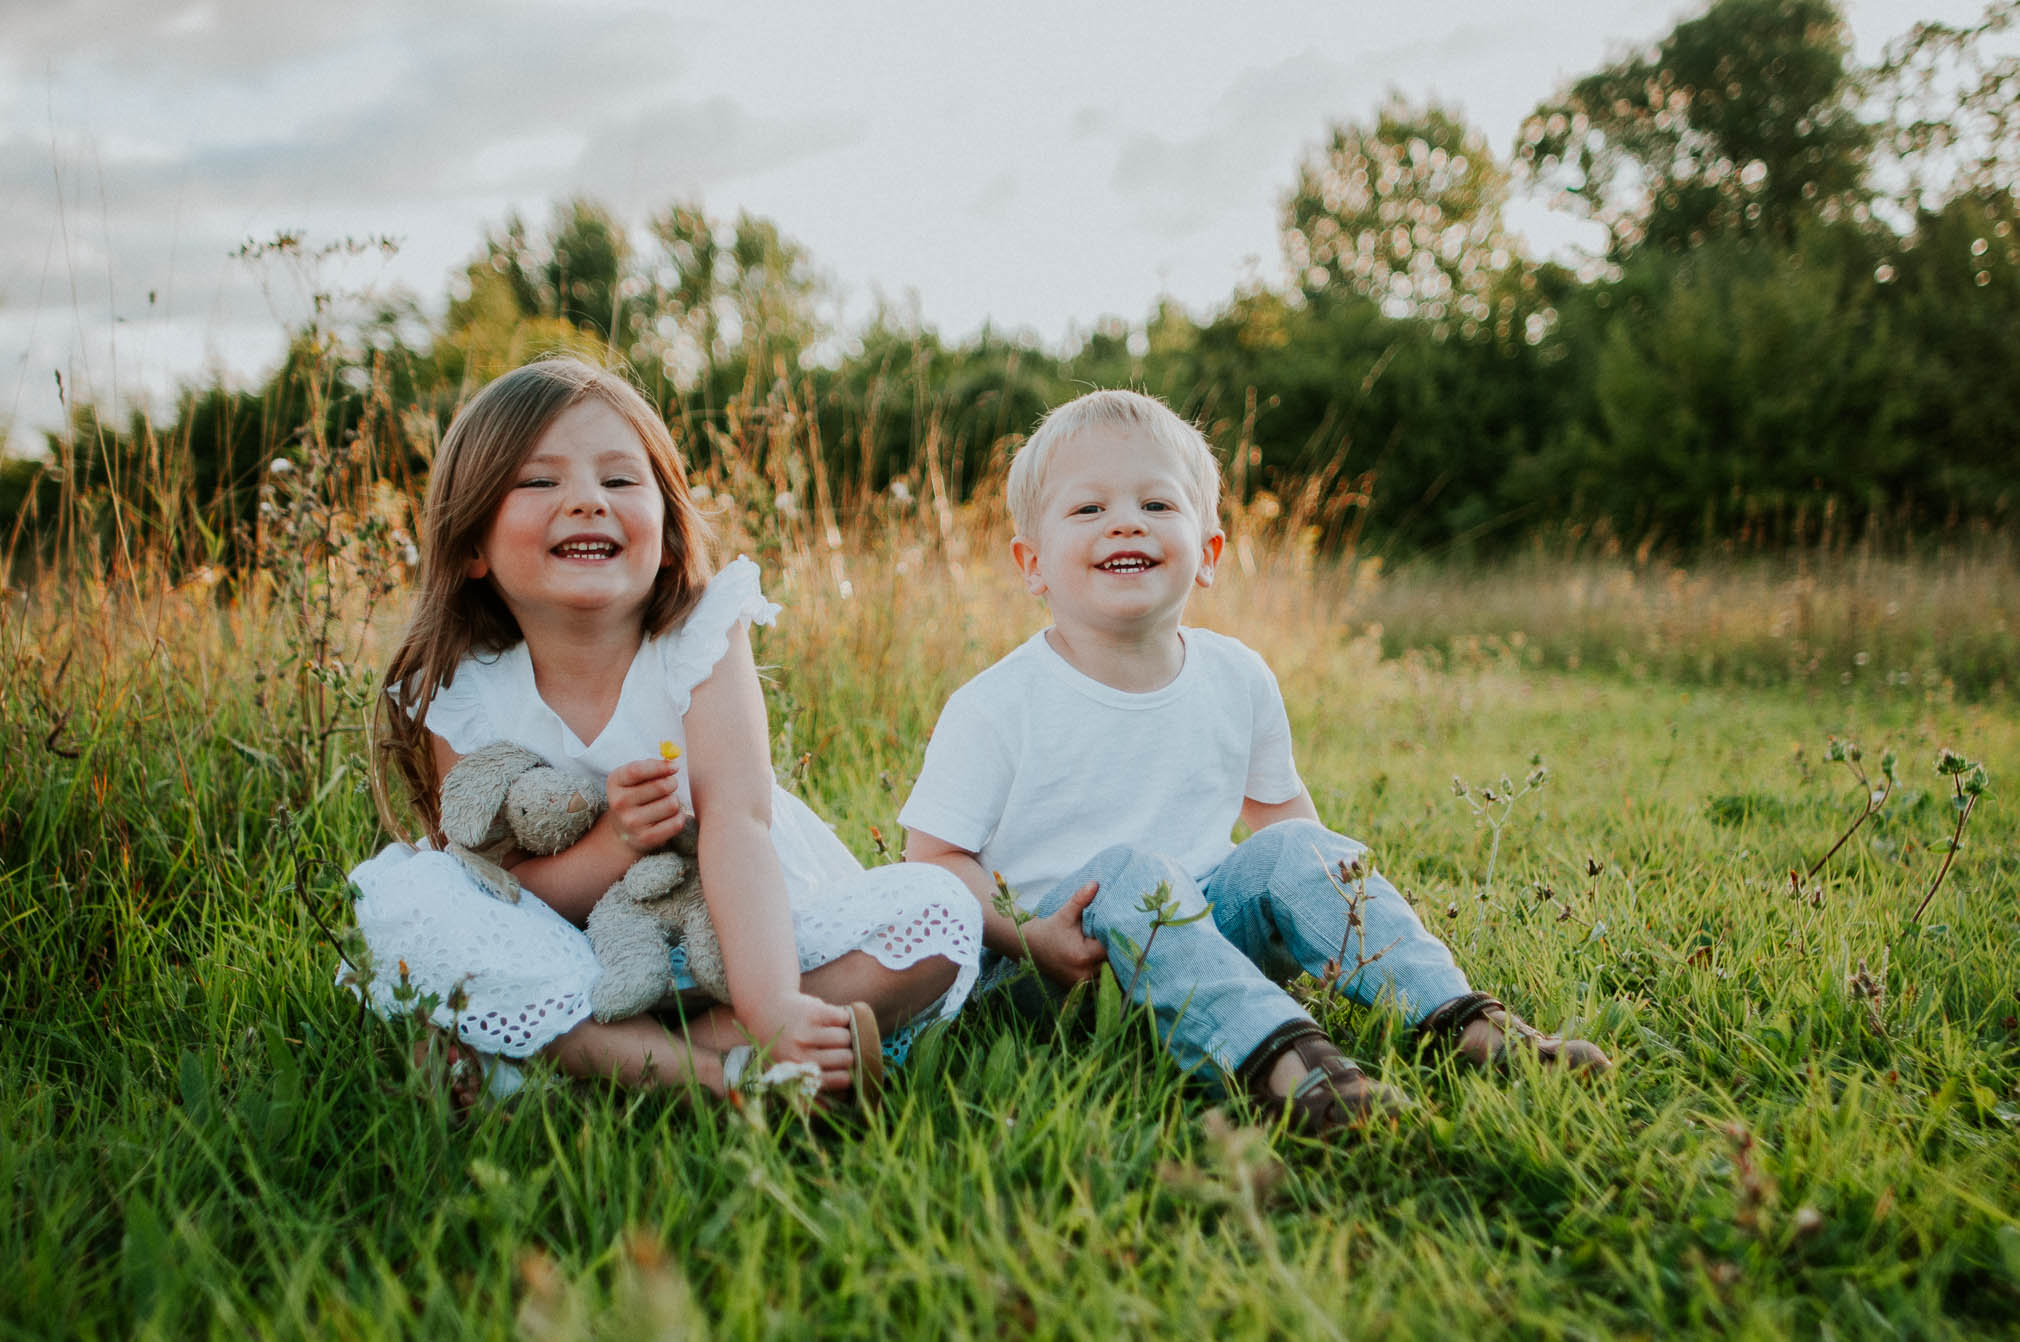 www.purplepeartreephotography.com Essex portrait photographer Famil & lifestyle photographyJPG (12).JPG